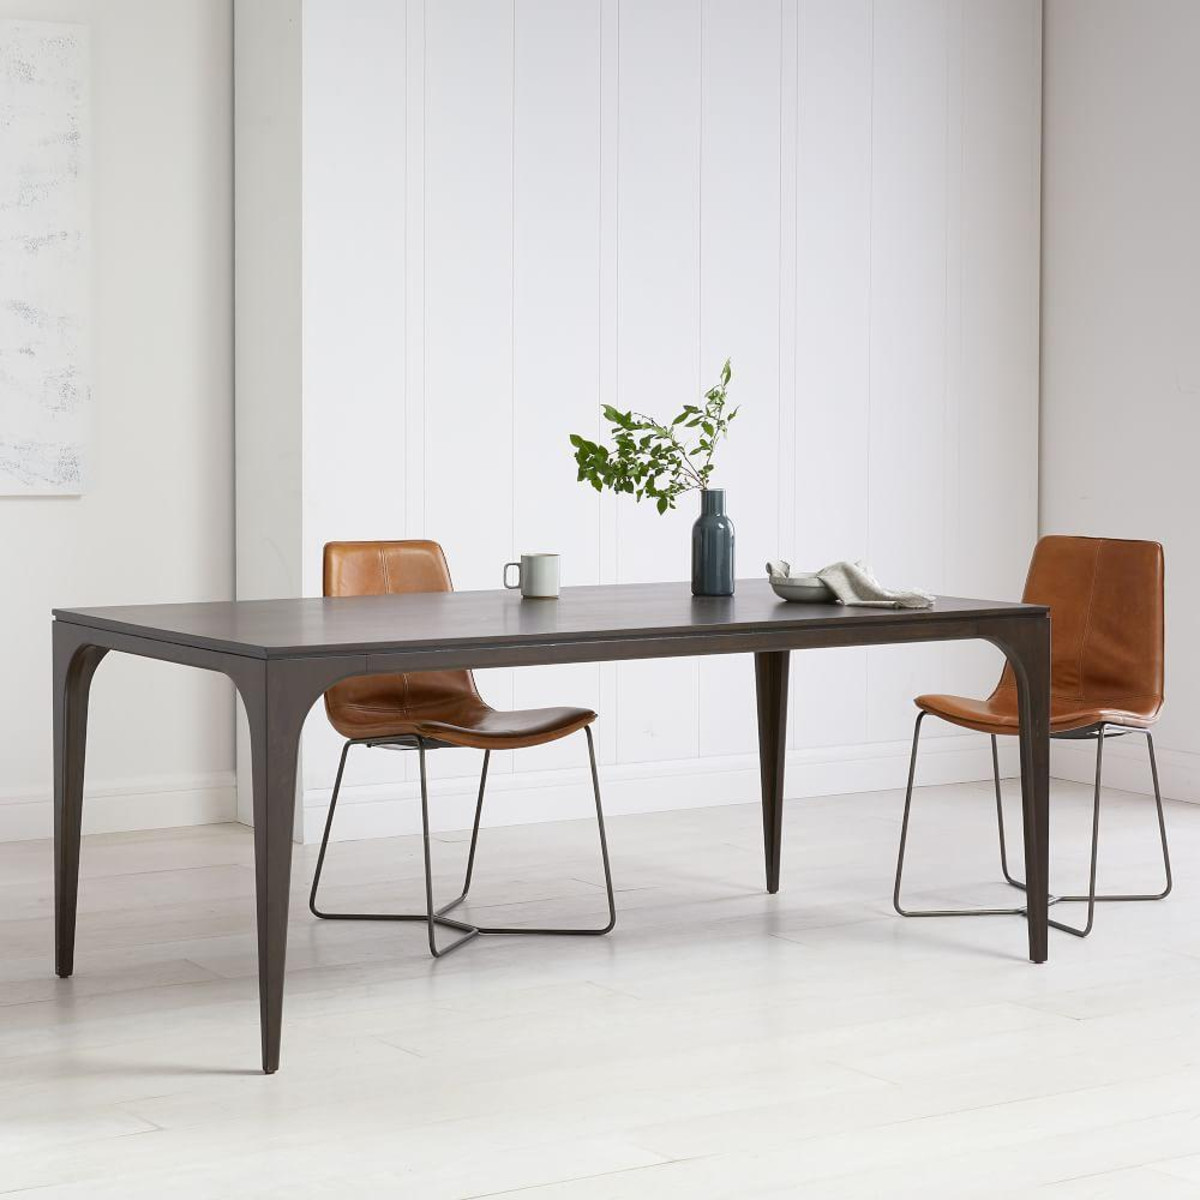 Adam Court dining table from West Elm